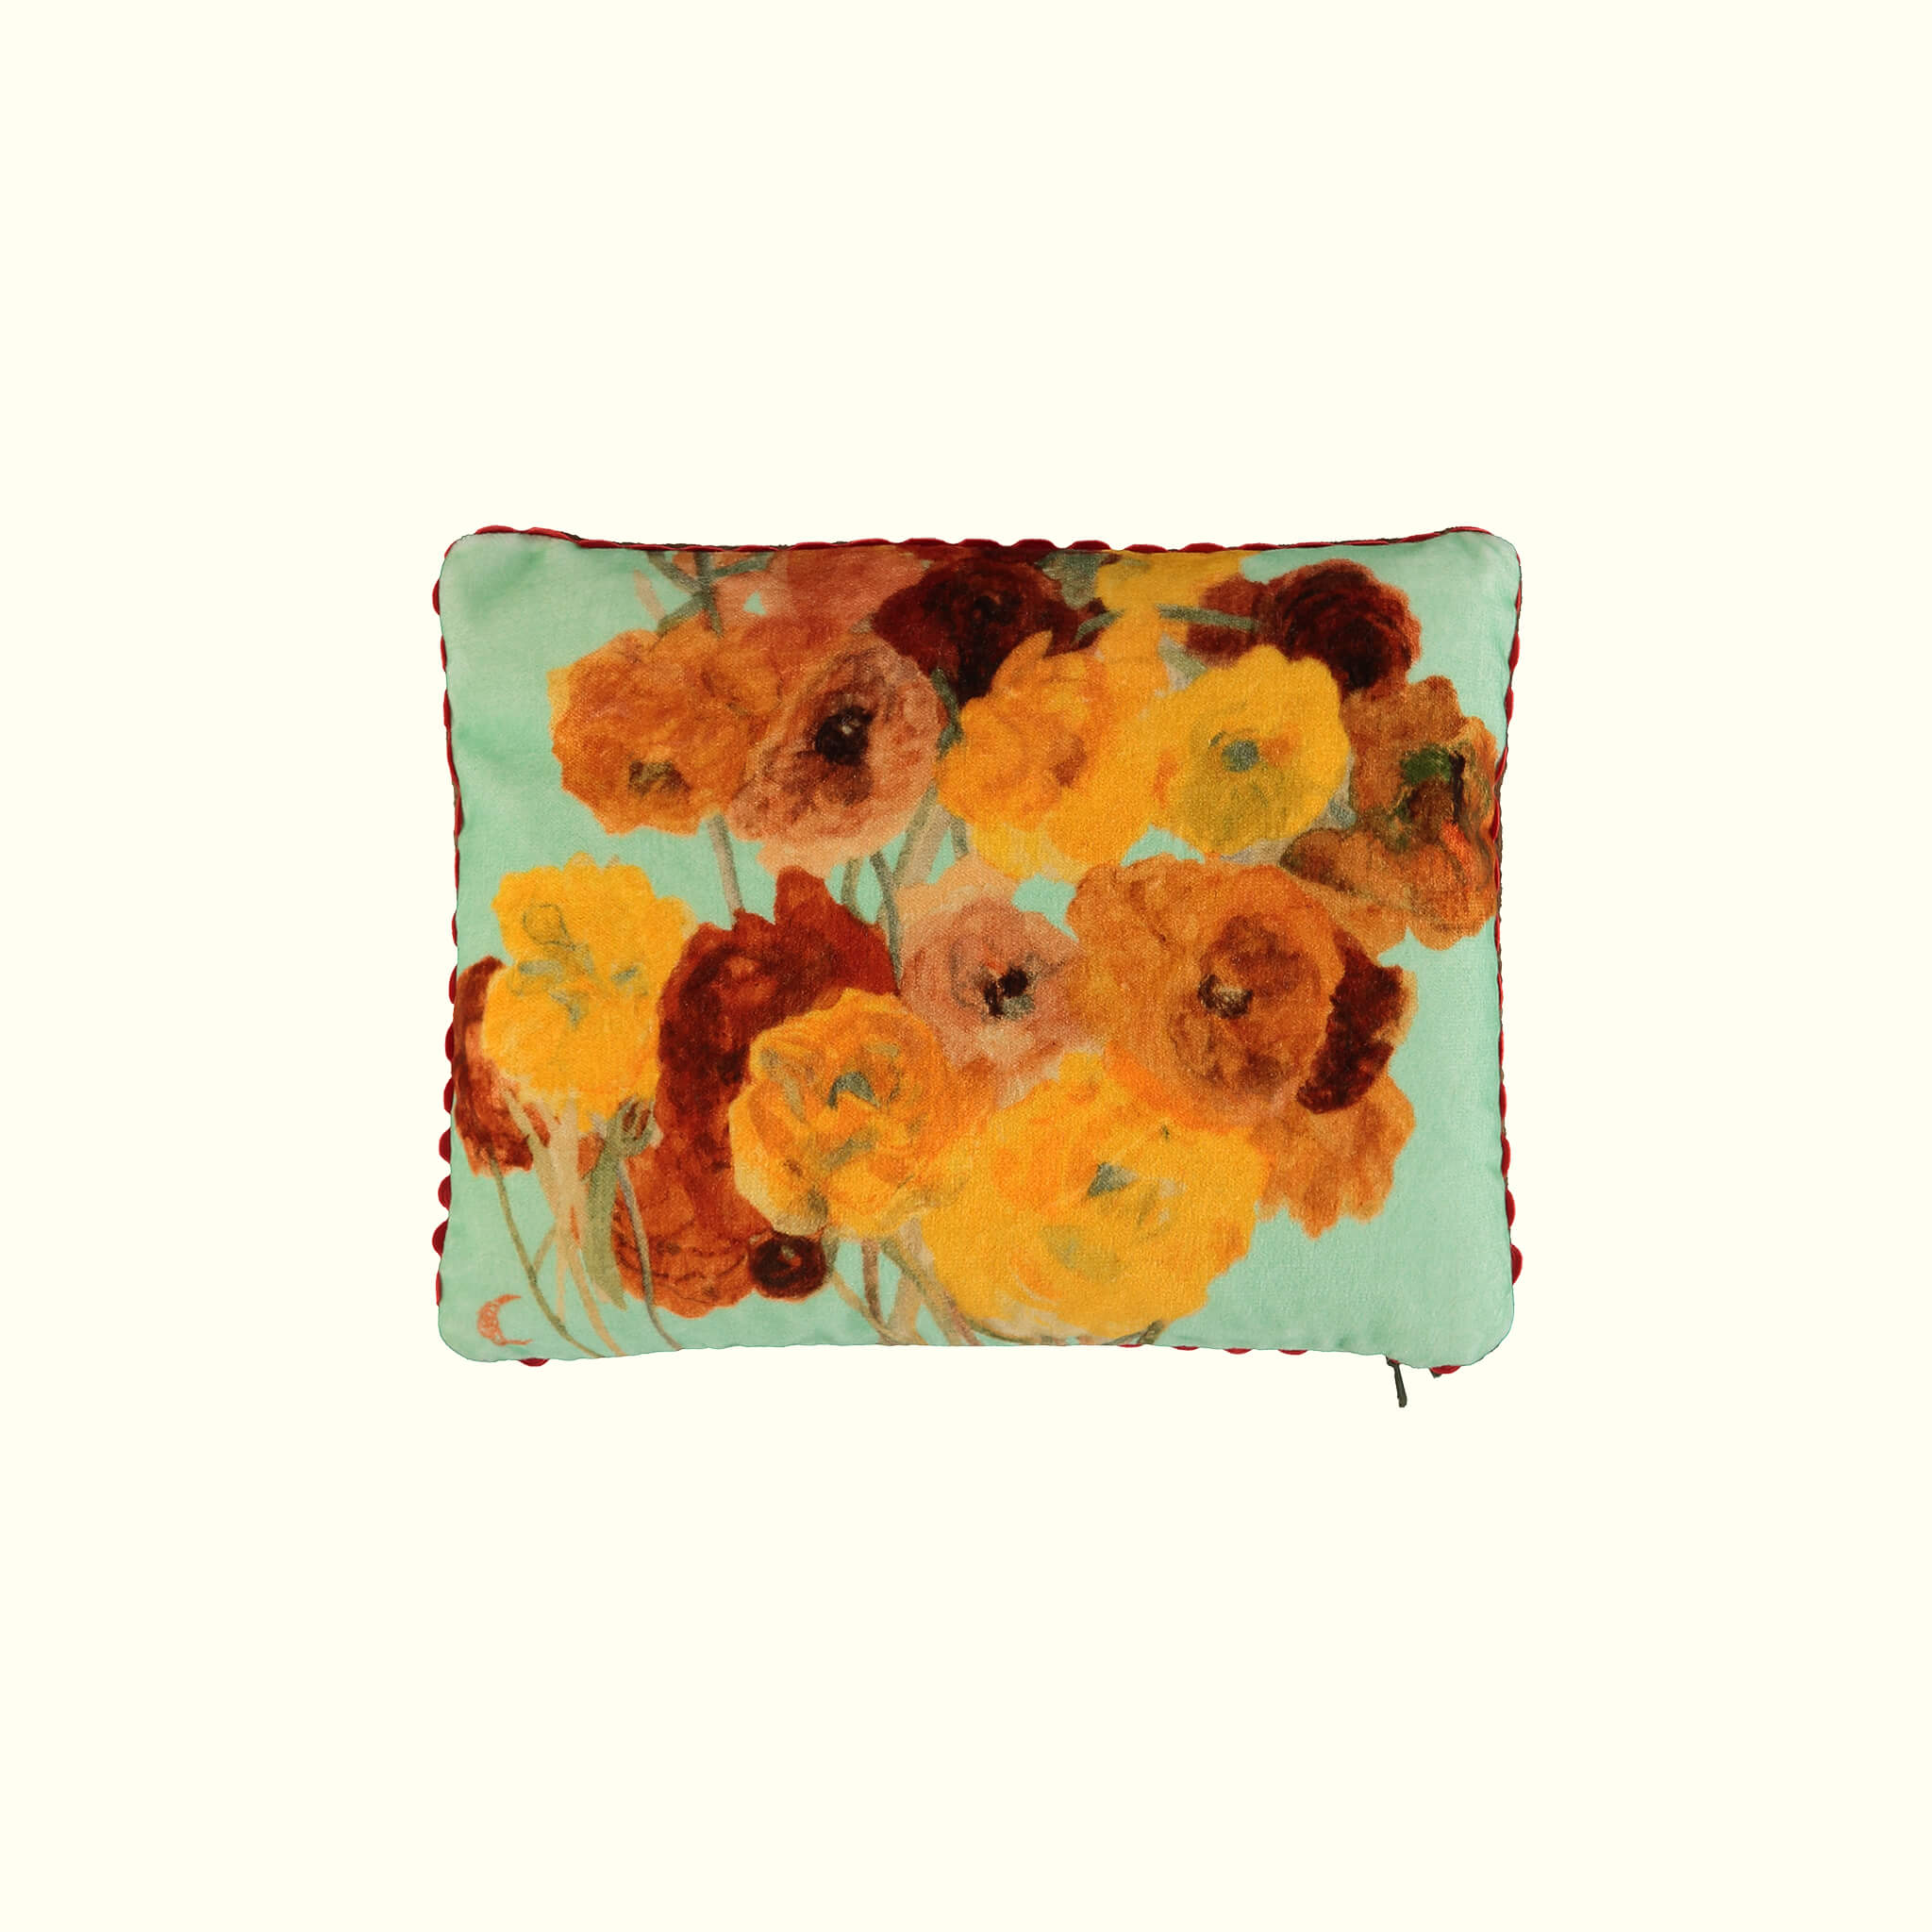 A luxury British cotton velvet travel pillow by GVE in mint ochre Ranunculus print design.